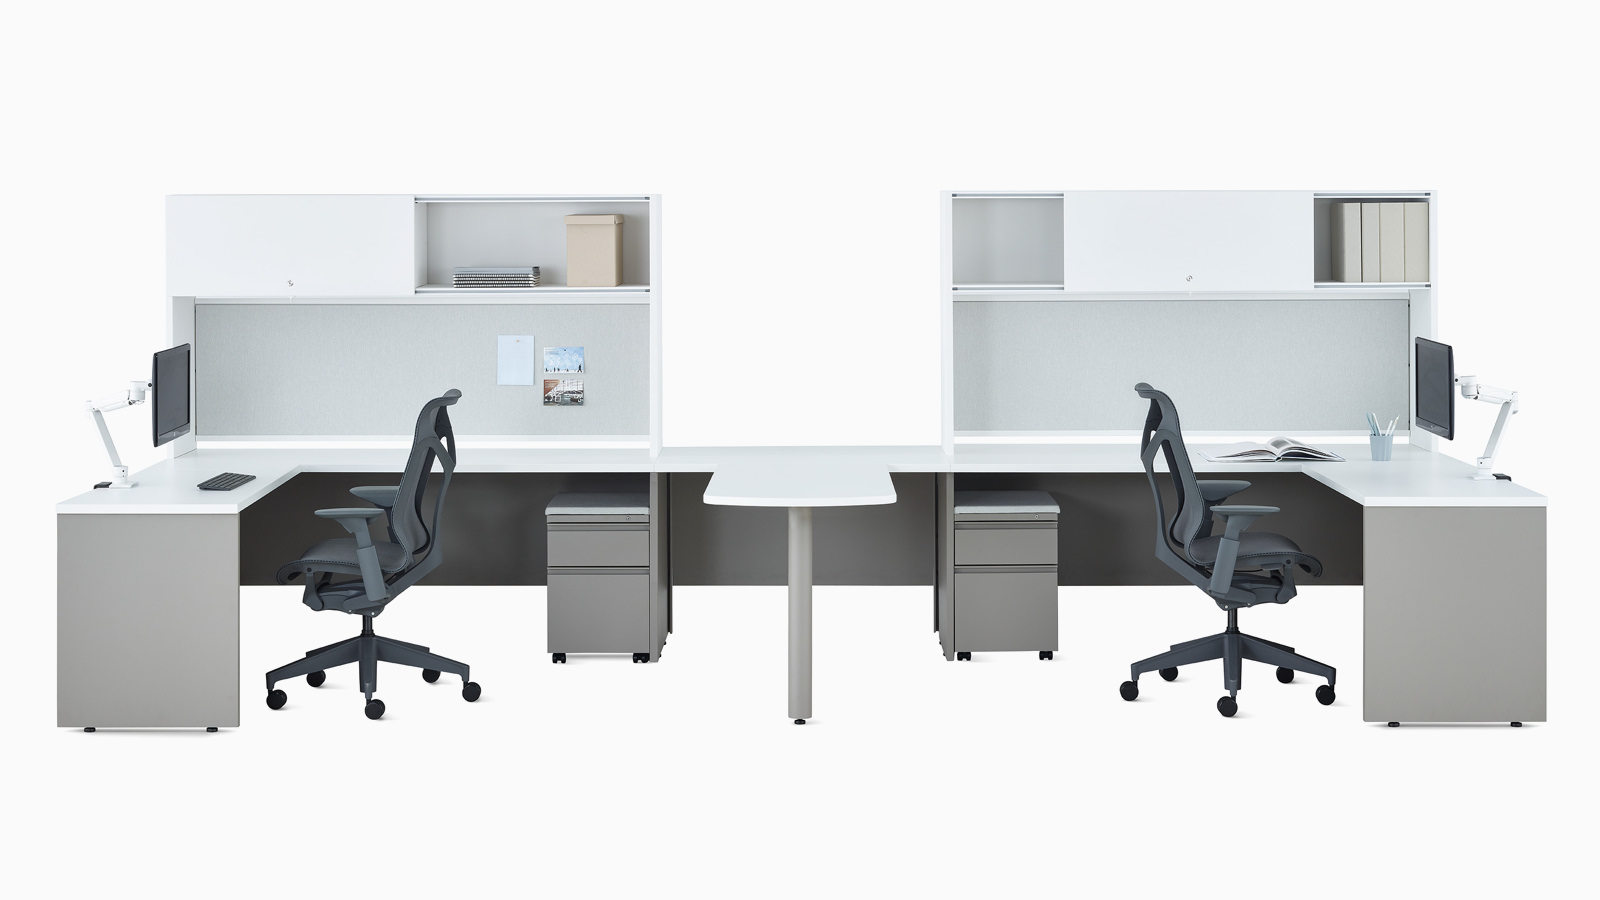 Two white and gray Canvas Metal Desks with upper storage, Concerto Monitor Arms, and dark gray Cosm Chairs.